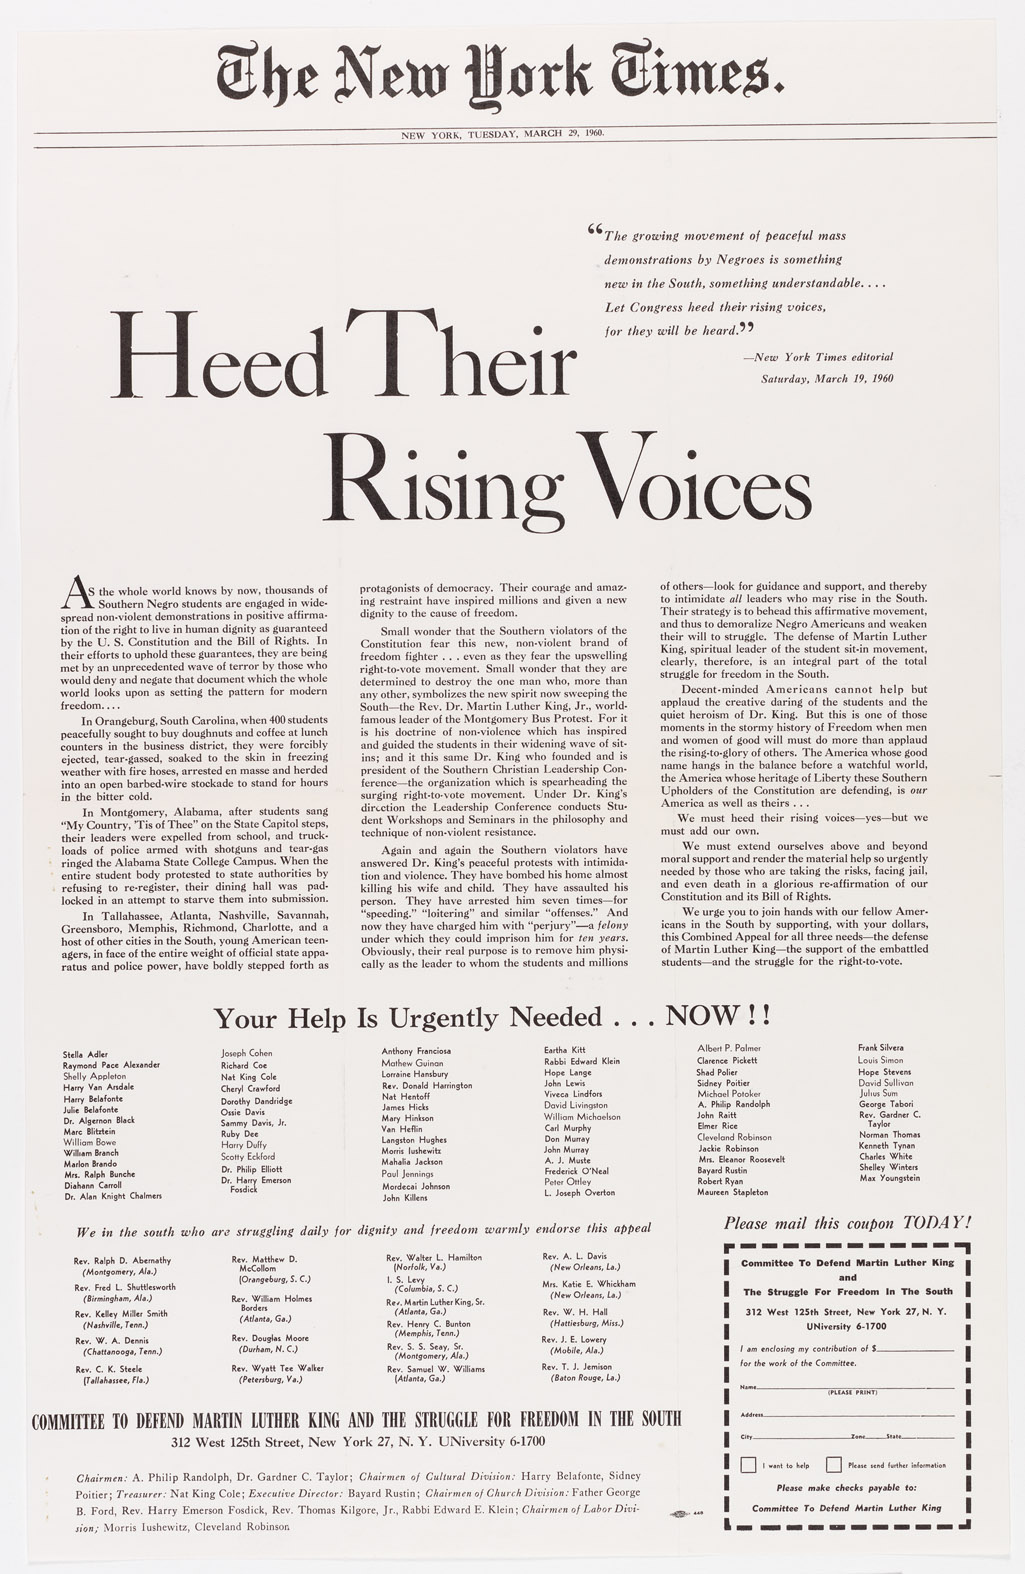 Heed Their Rising Voices - Wikipedia